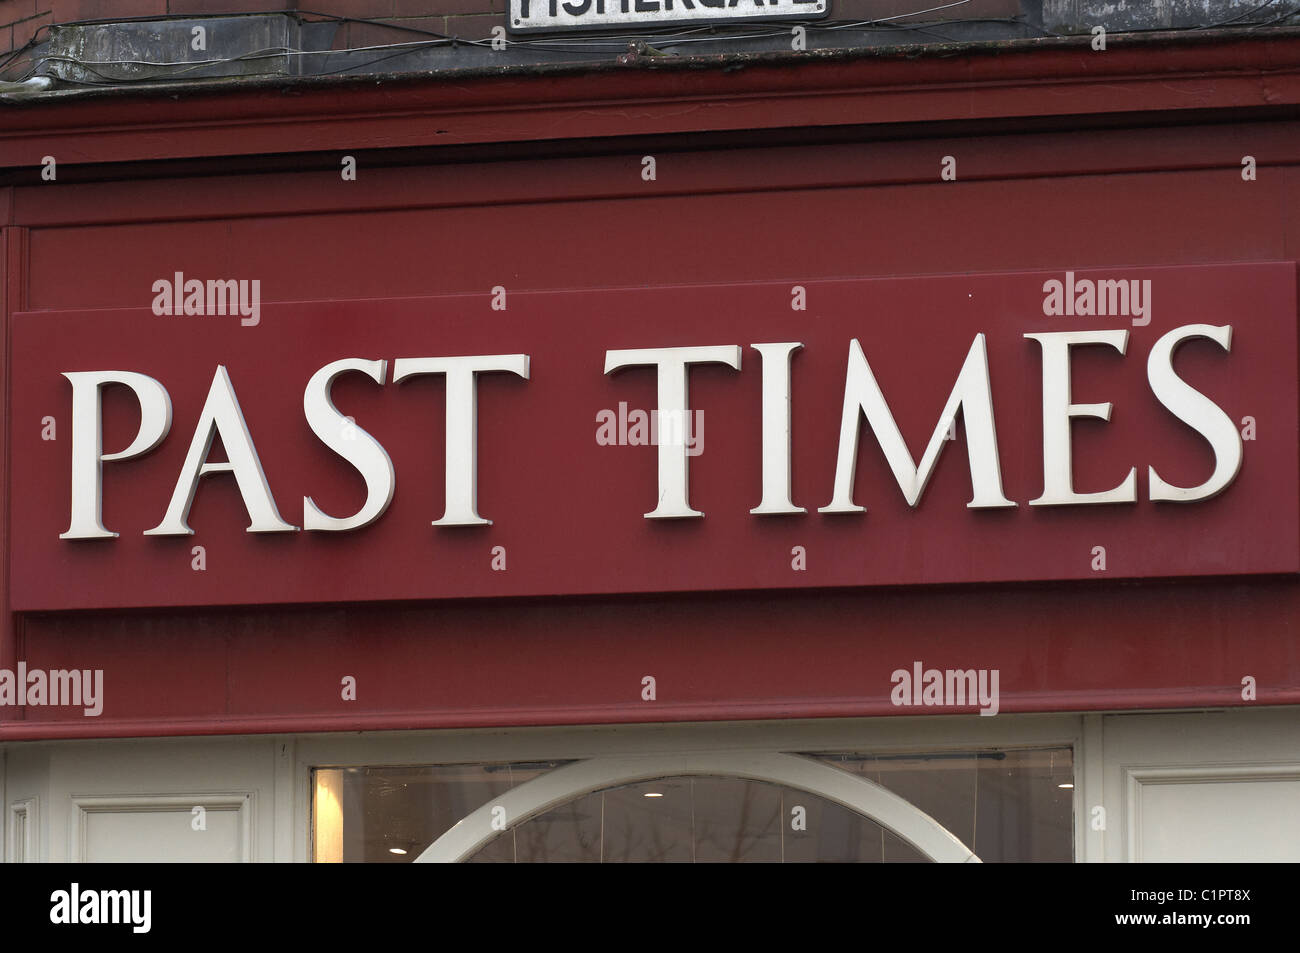 past times shop sign - Stock Image